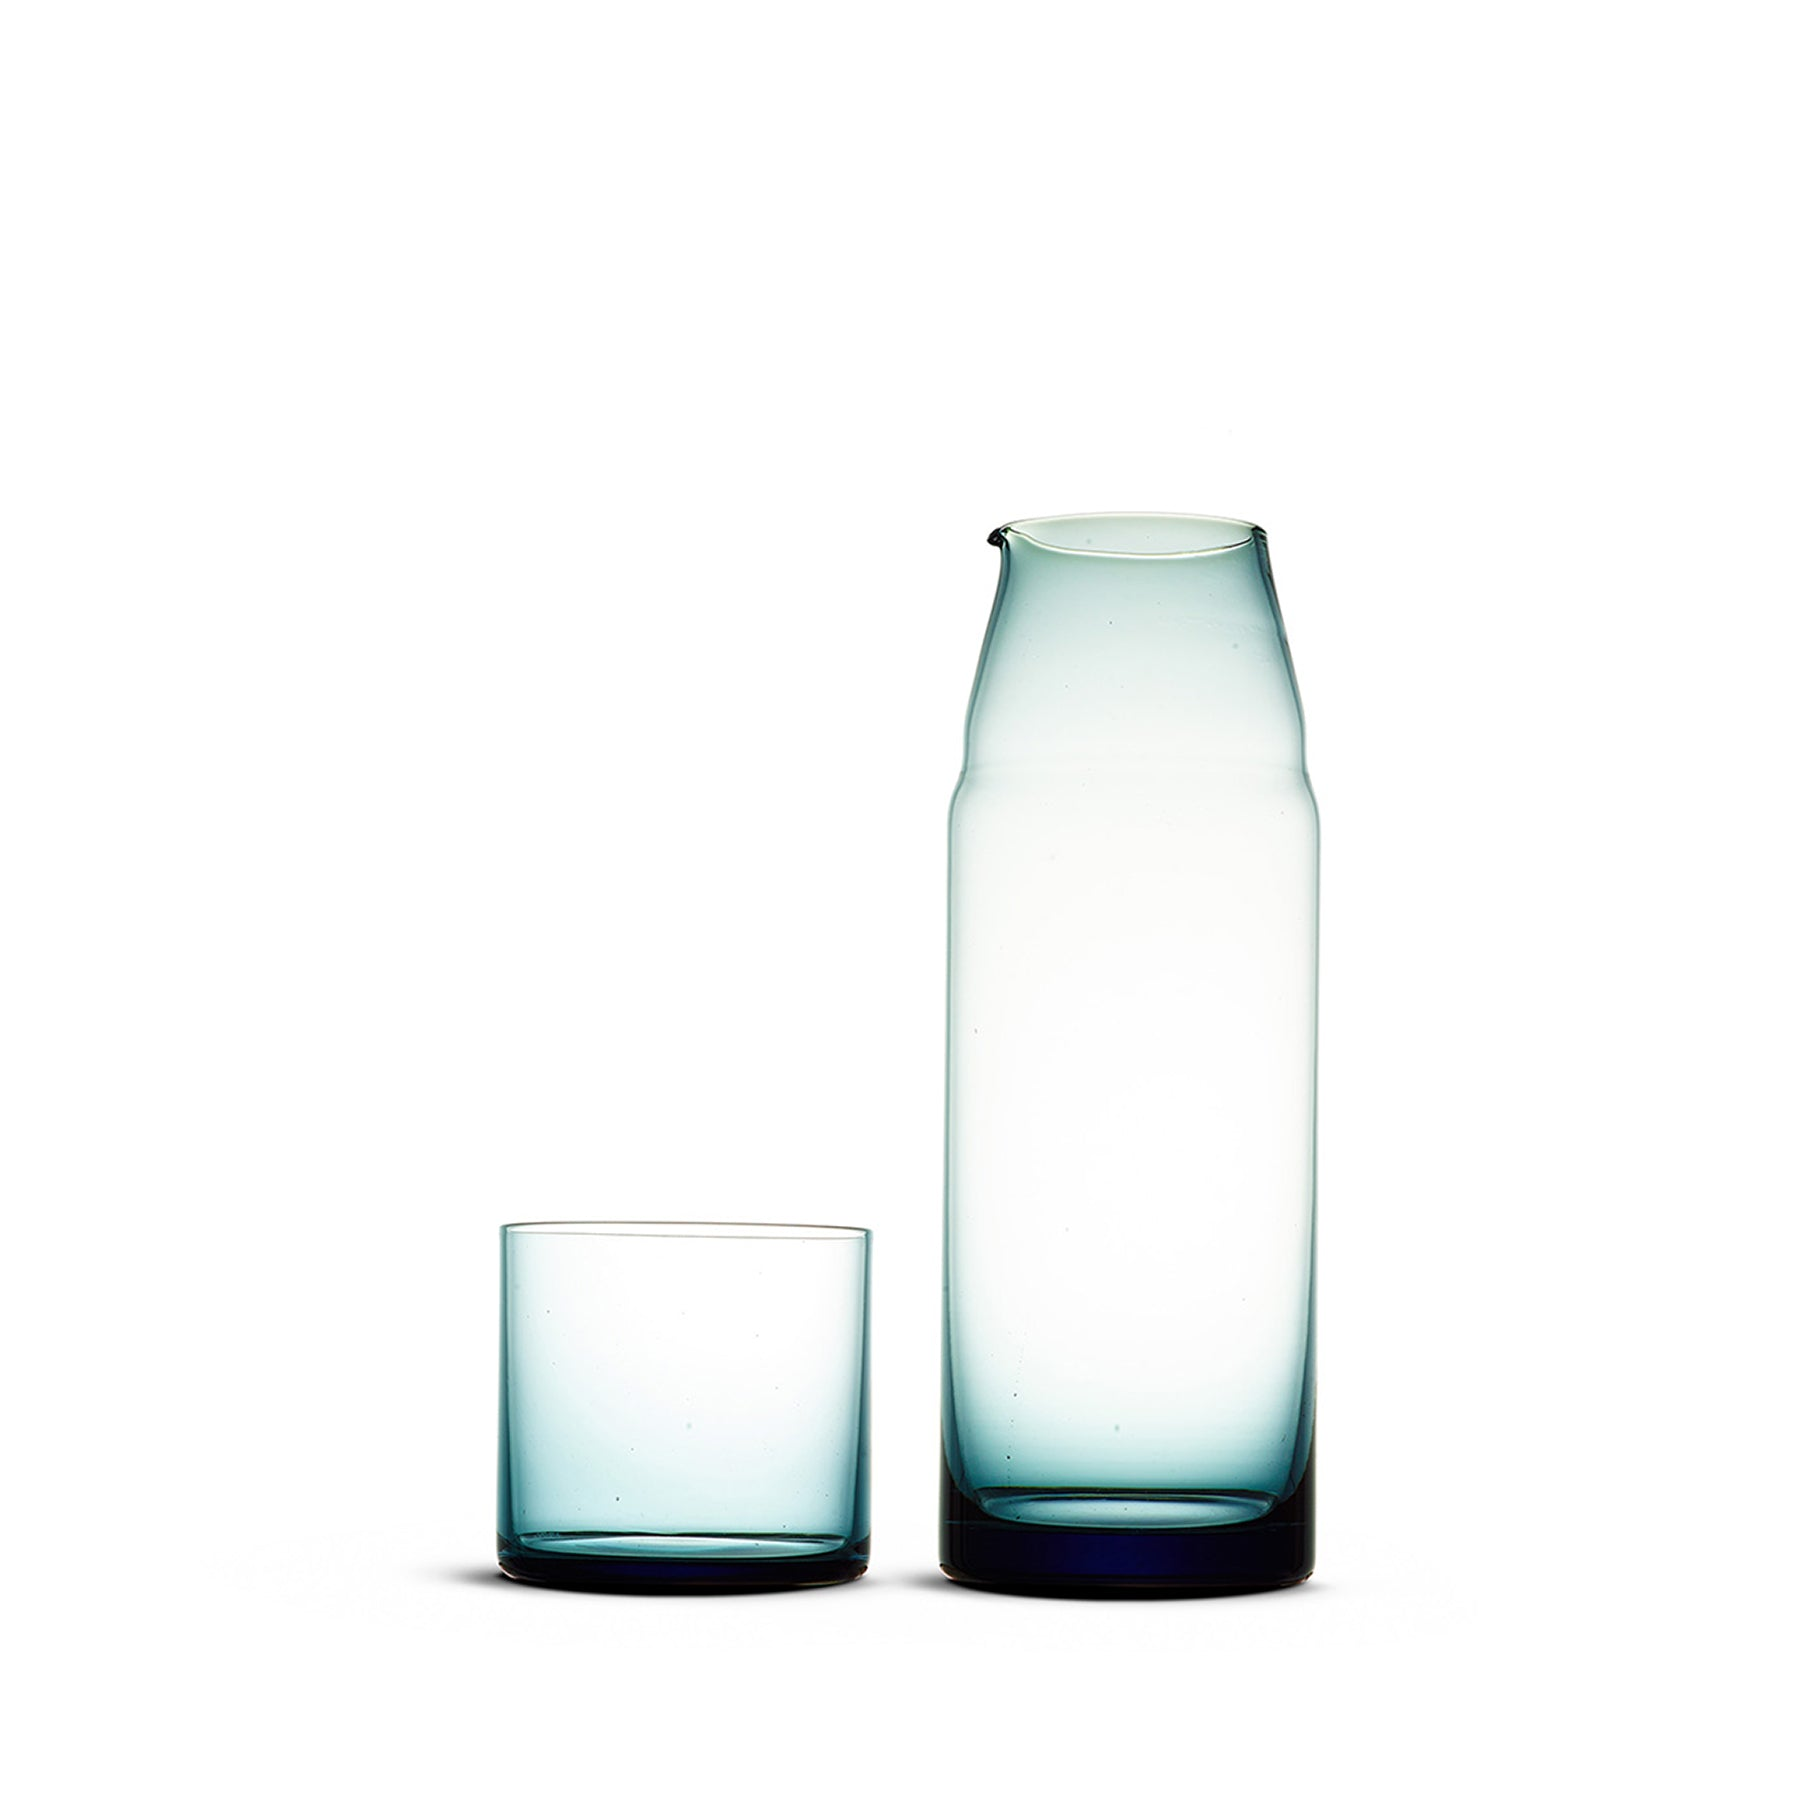 Night Carafe in Indigo 24 oz Zoom Image 1